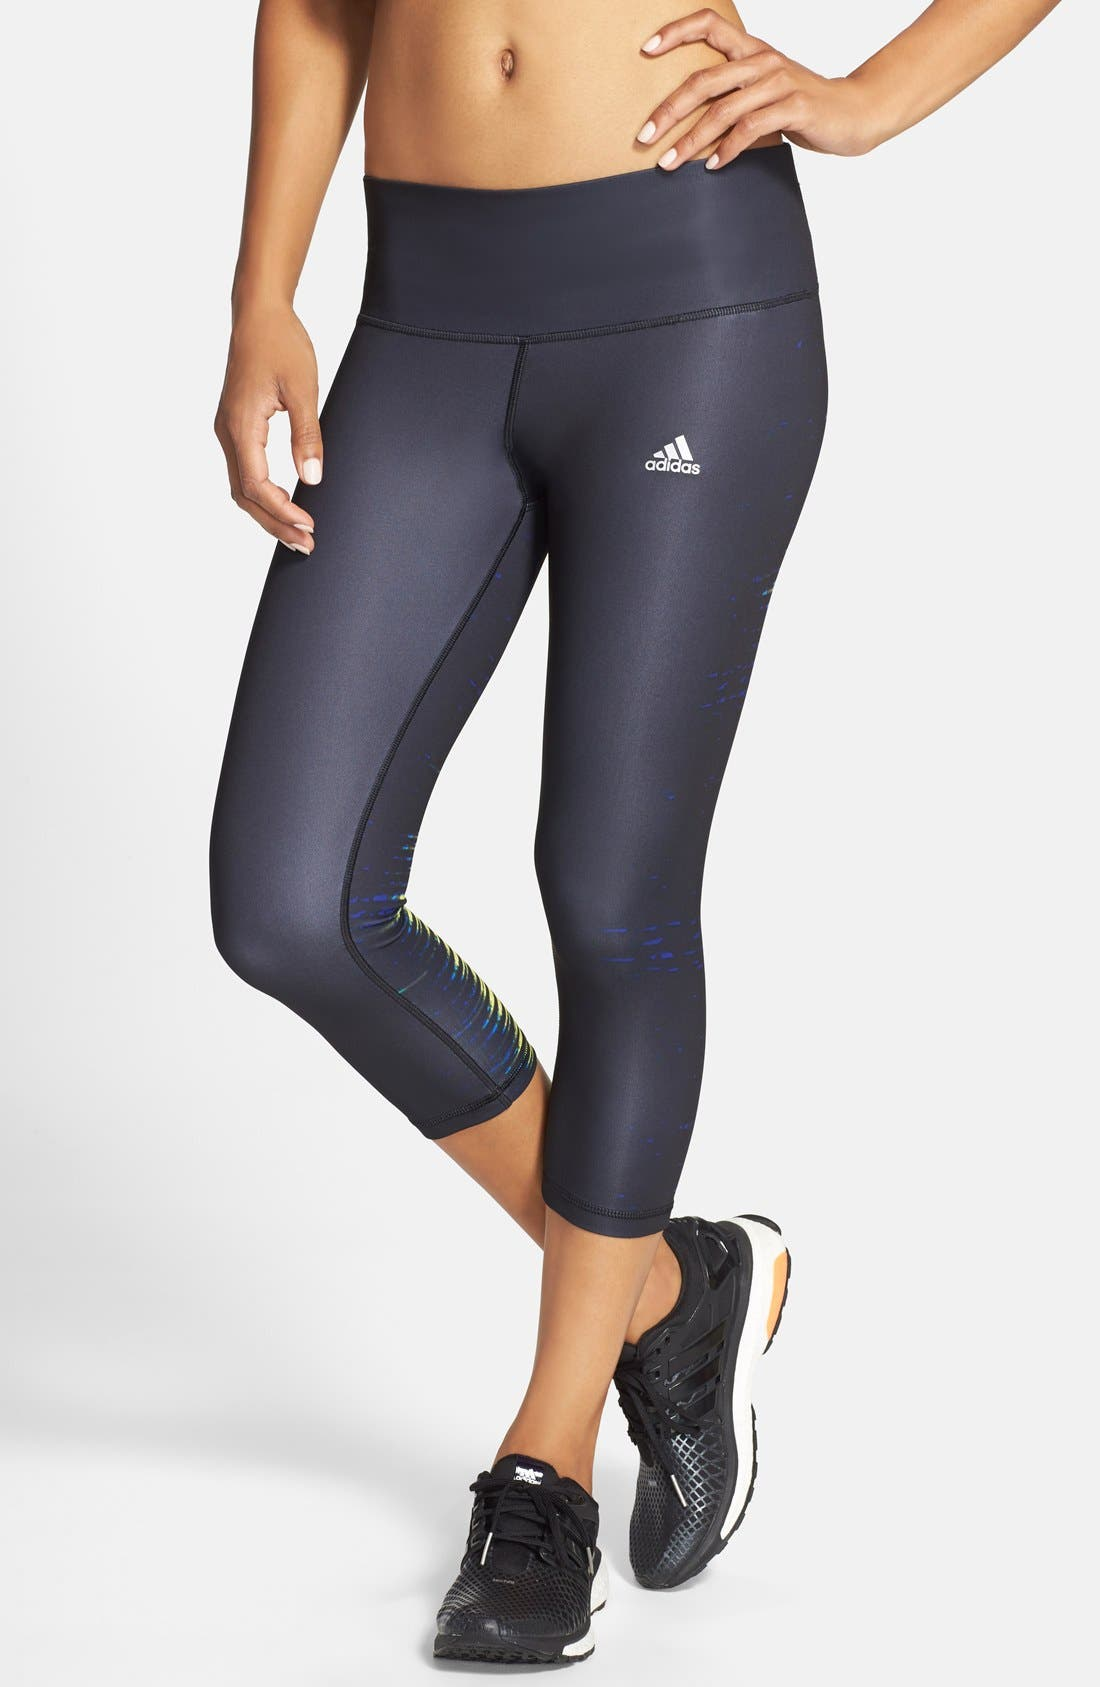 Alternate Image 1 Selected - adidas 'Performer' Mid-Rise Three Quarter Tights